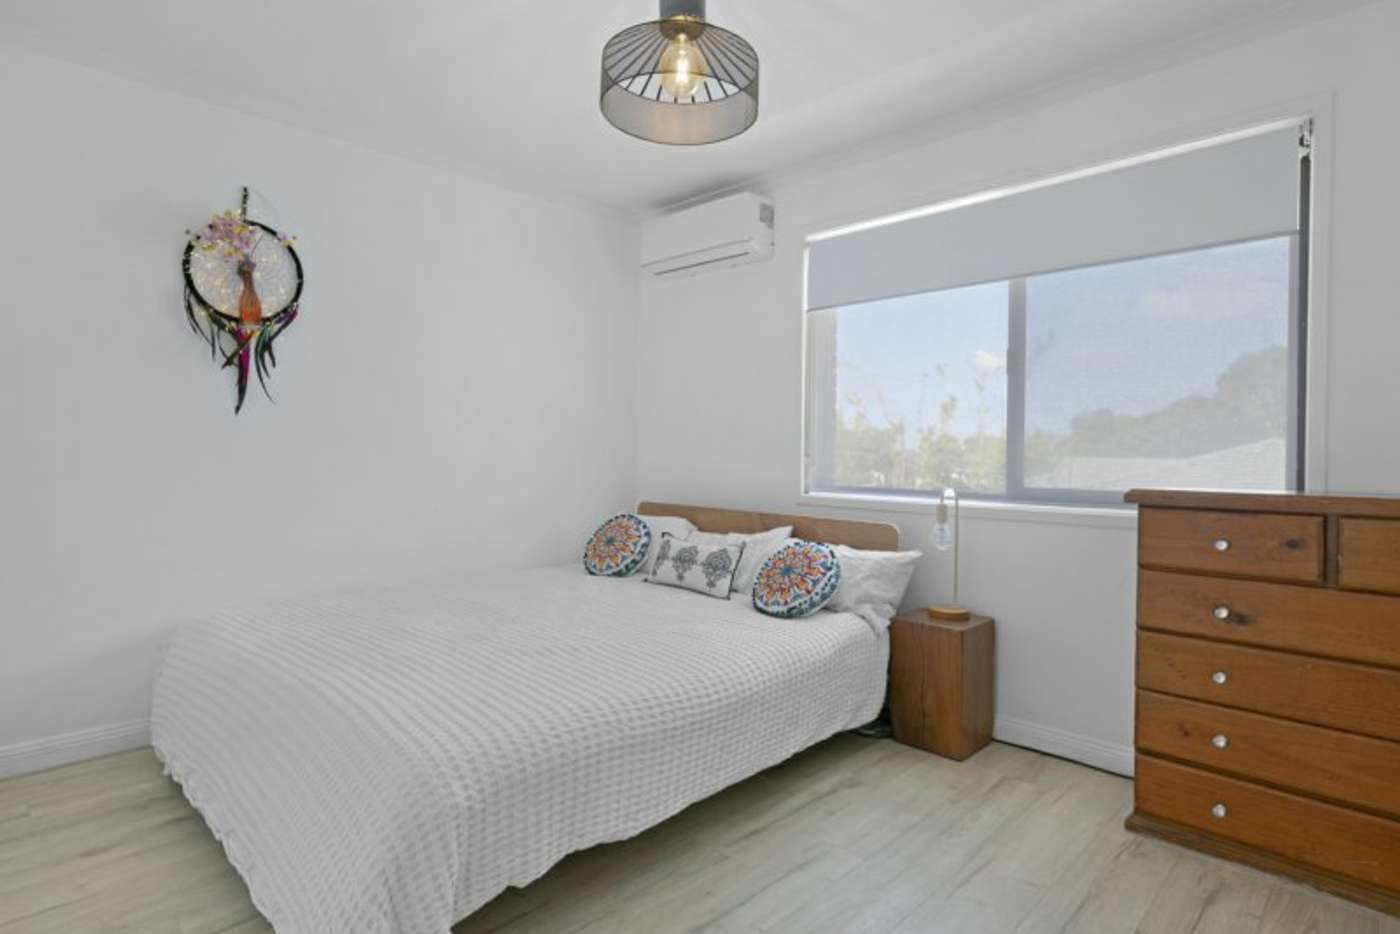 Seventh view of Homely townhouse listing, Address available on request